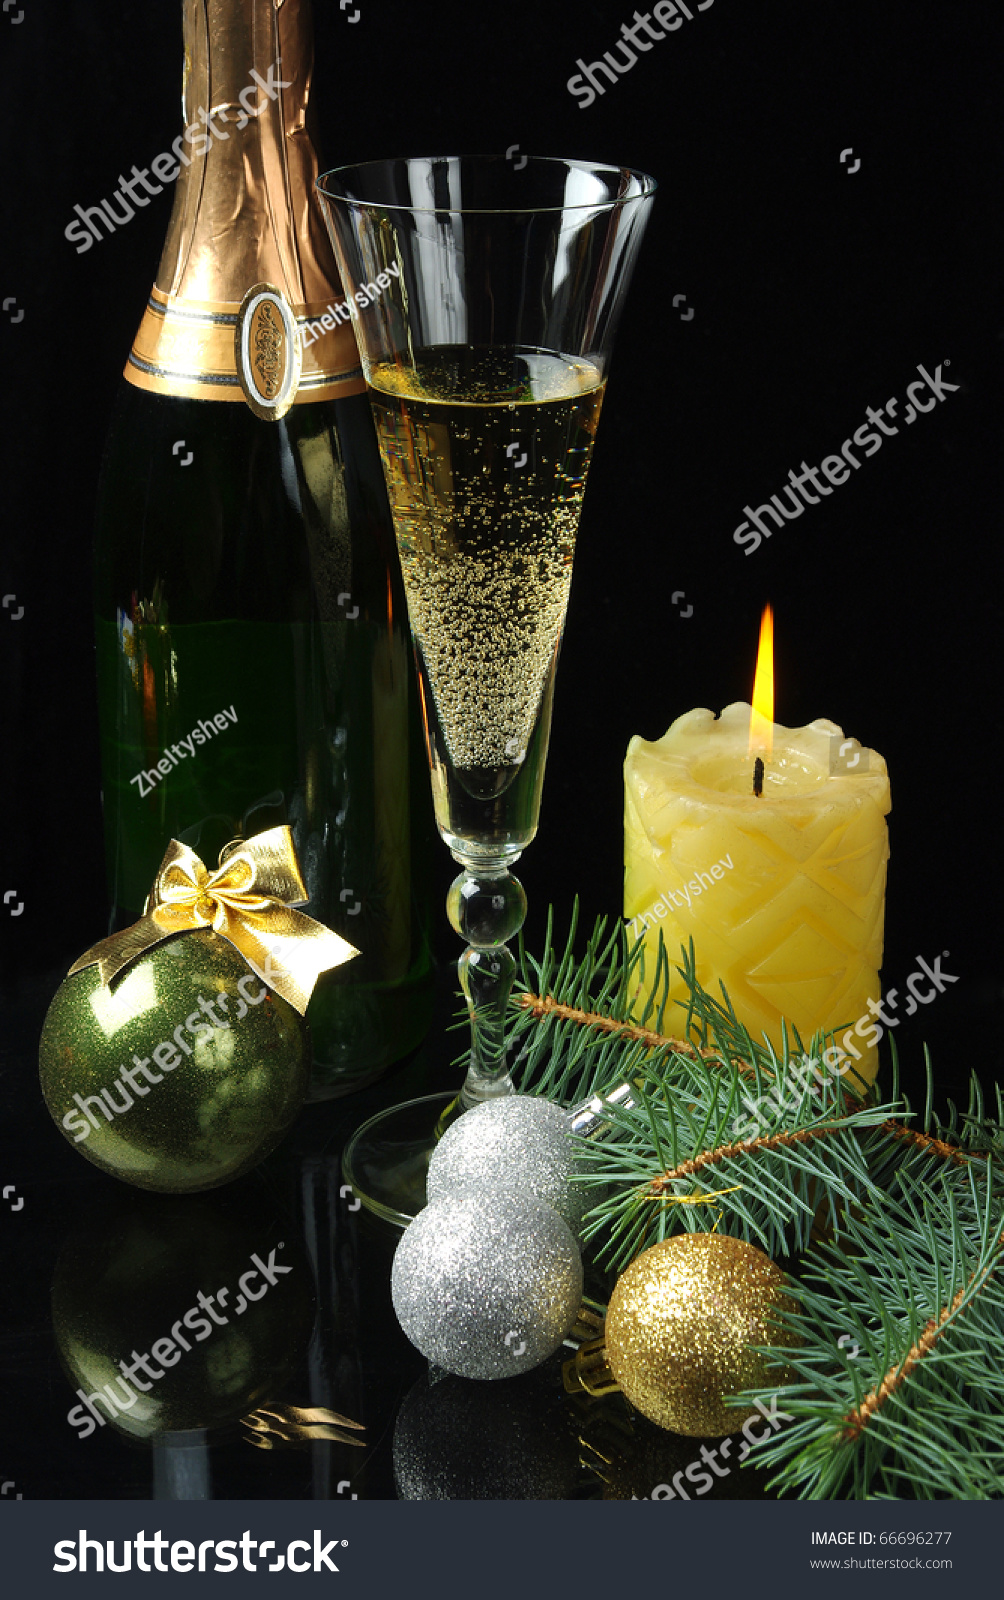 Champagne Bottle Decoration Glass Champagne Bottle Candle New Years Stock Photo 66696277